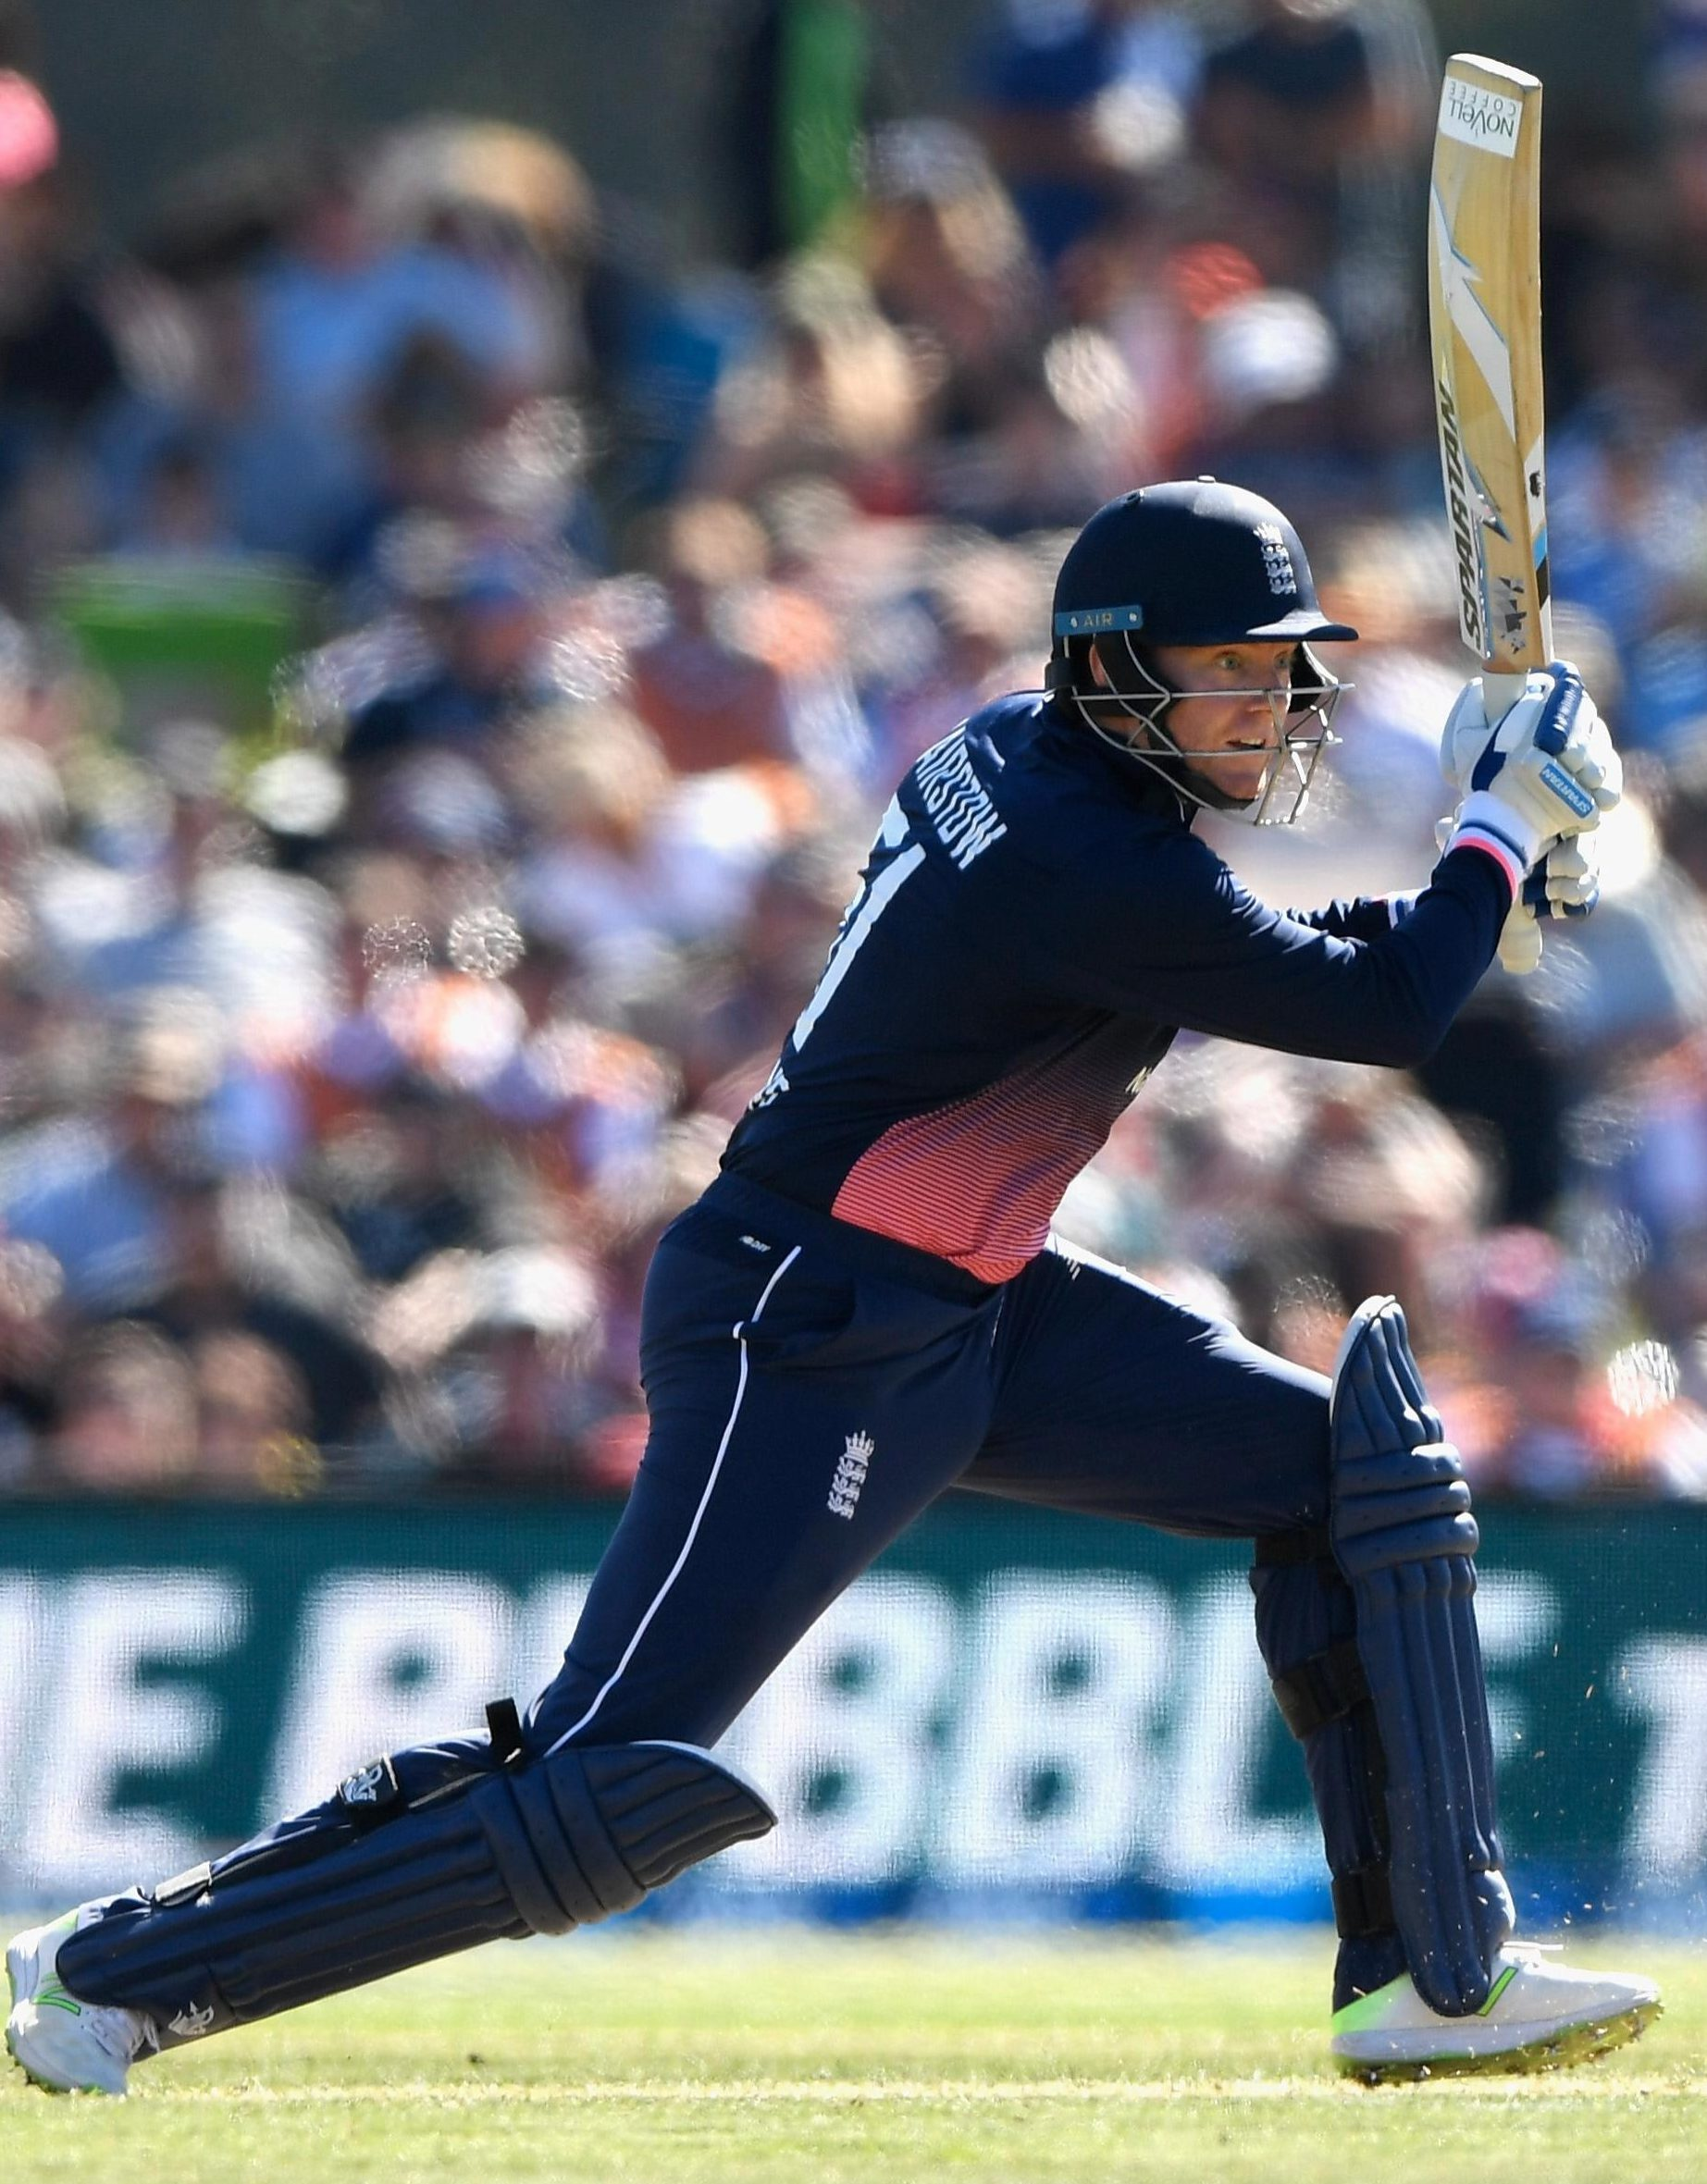 Jonny Bairstow reached his century in just 58 balls as England brushed aside New Zealand